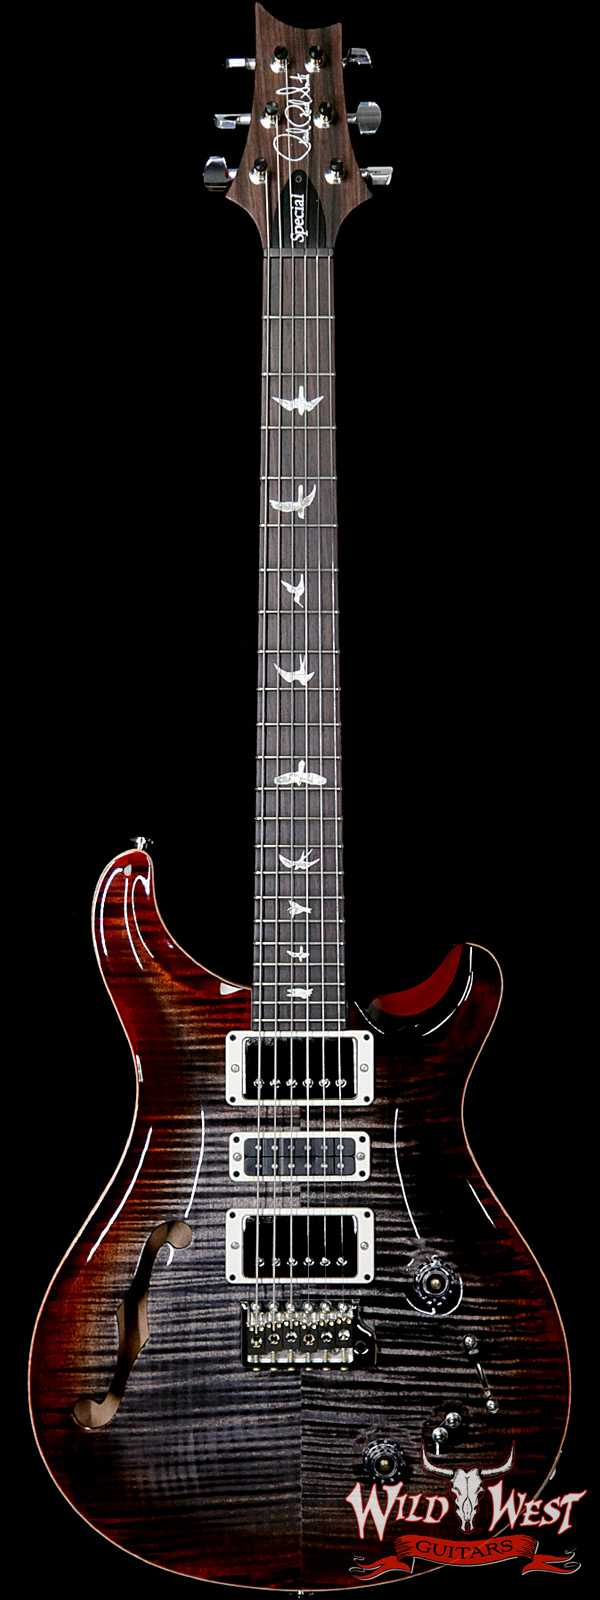 Paul Reed Smith PRS Semi-Hollow Limited Edition Special 22 Rosewood Fingerboard Charcoal Cherry Burst